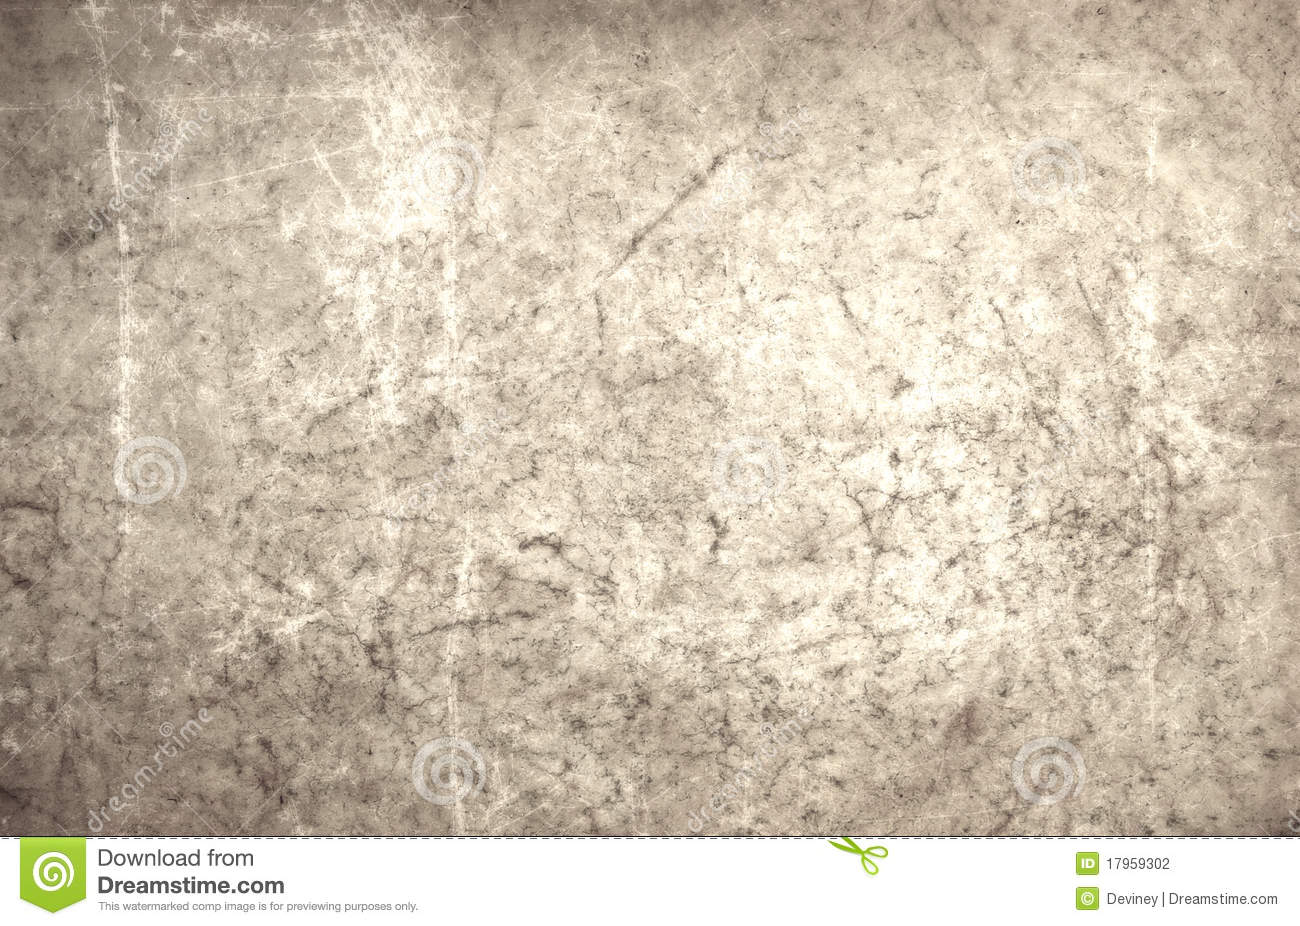 Old Paper Texture Stock Photography - Image: 17959302 White Paper Bag Texture